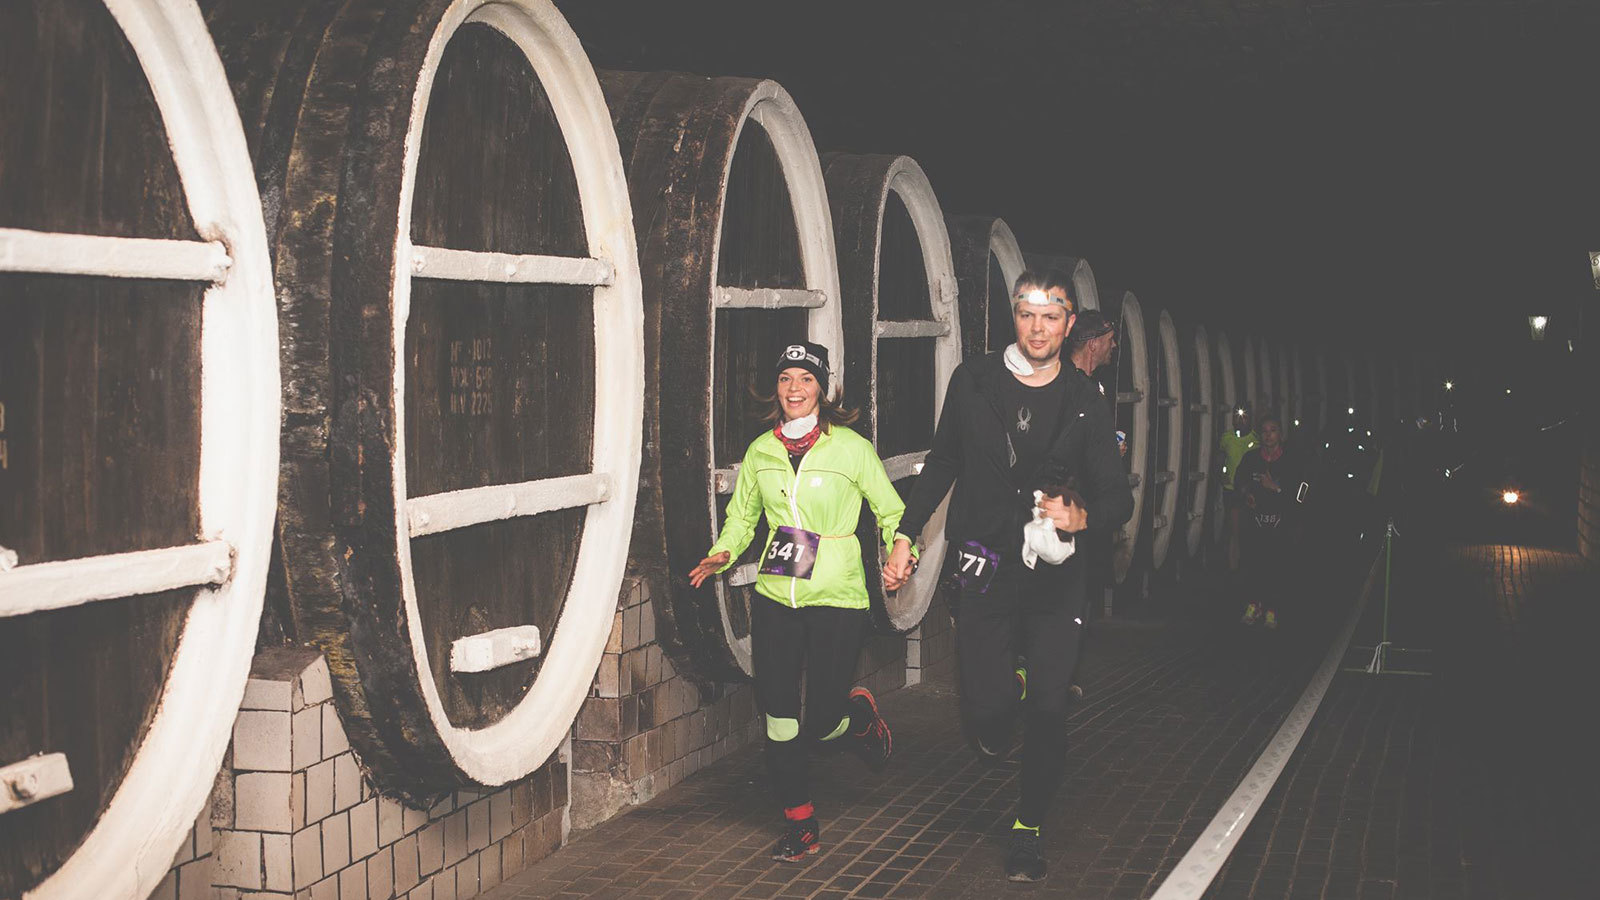 The 10k Race Through The World's Largest Wine Cellar photo